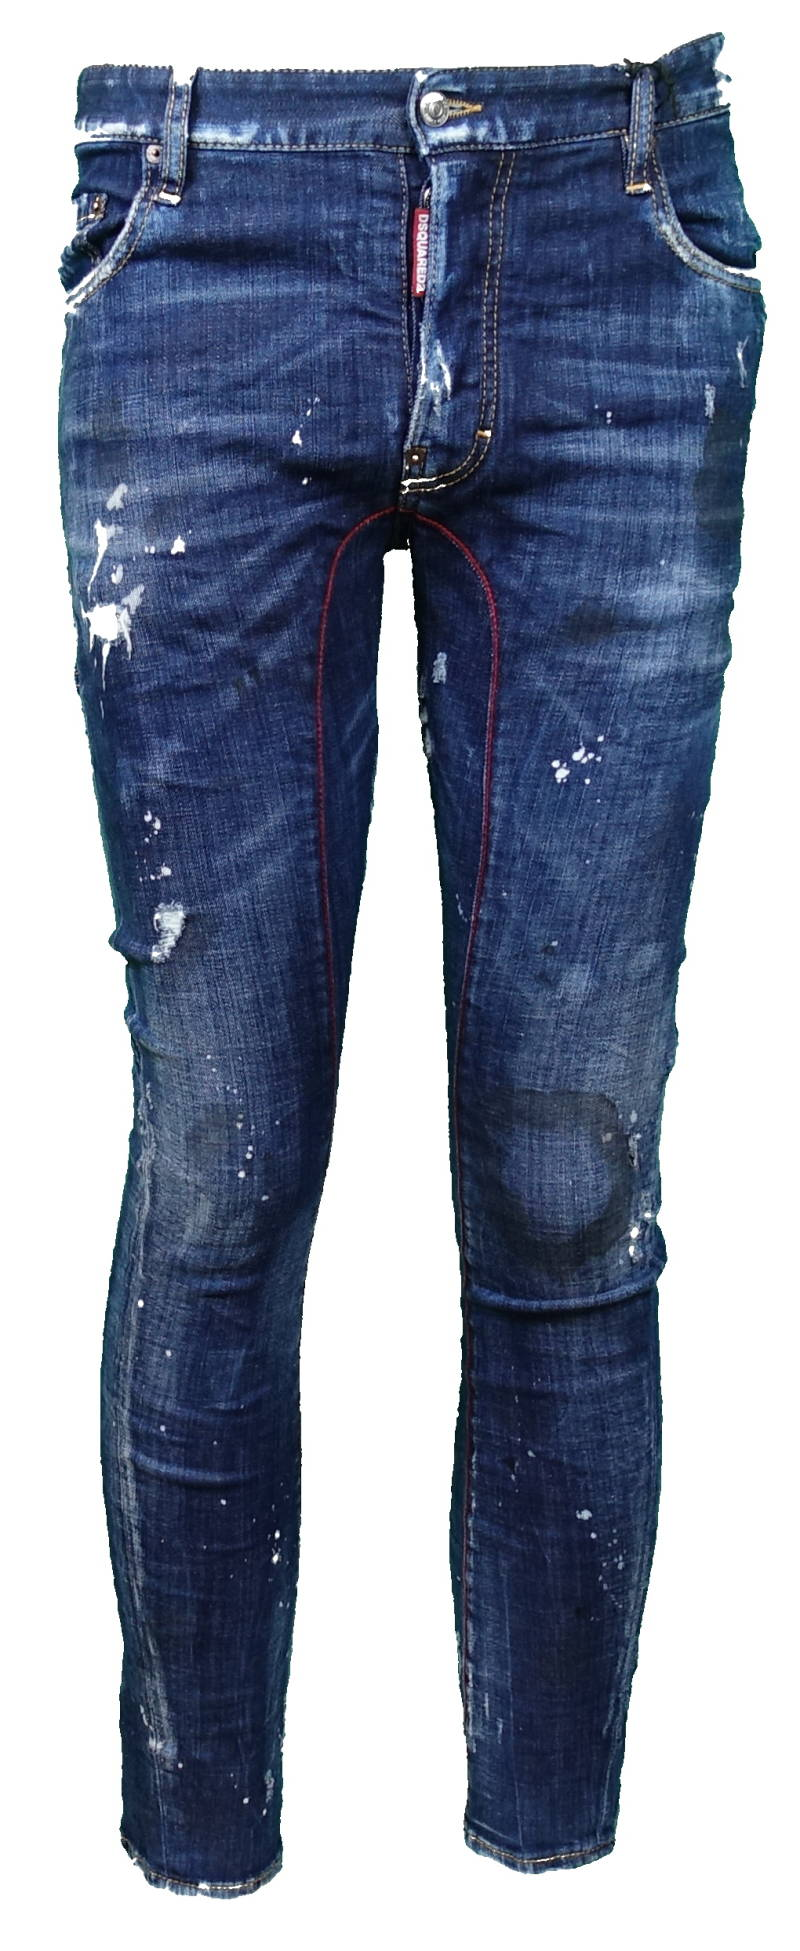 Dsquared2 'Tidy Biker Jean' raw-cut jeans - AW1819